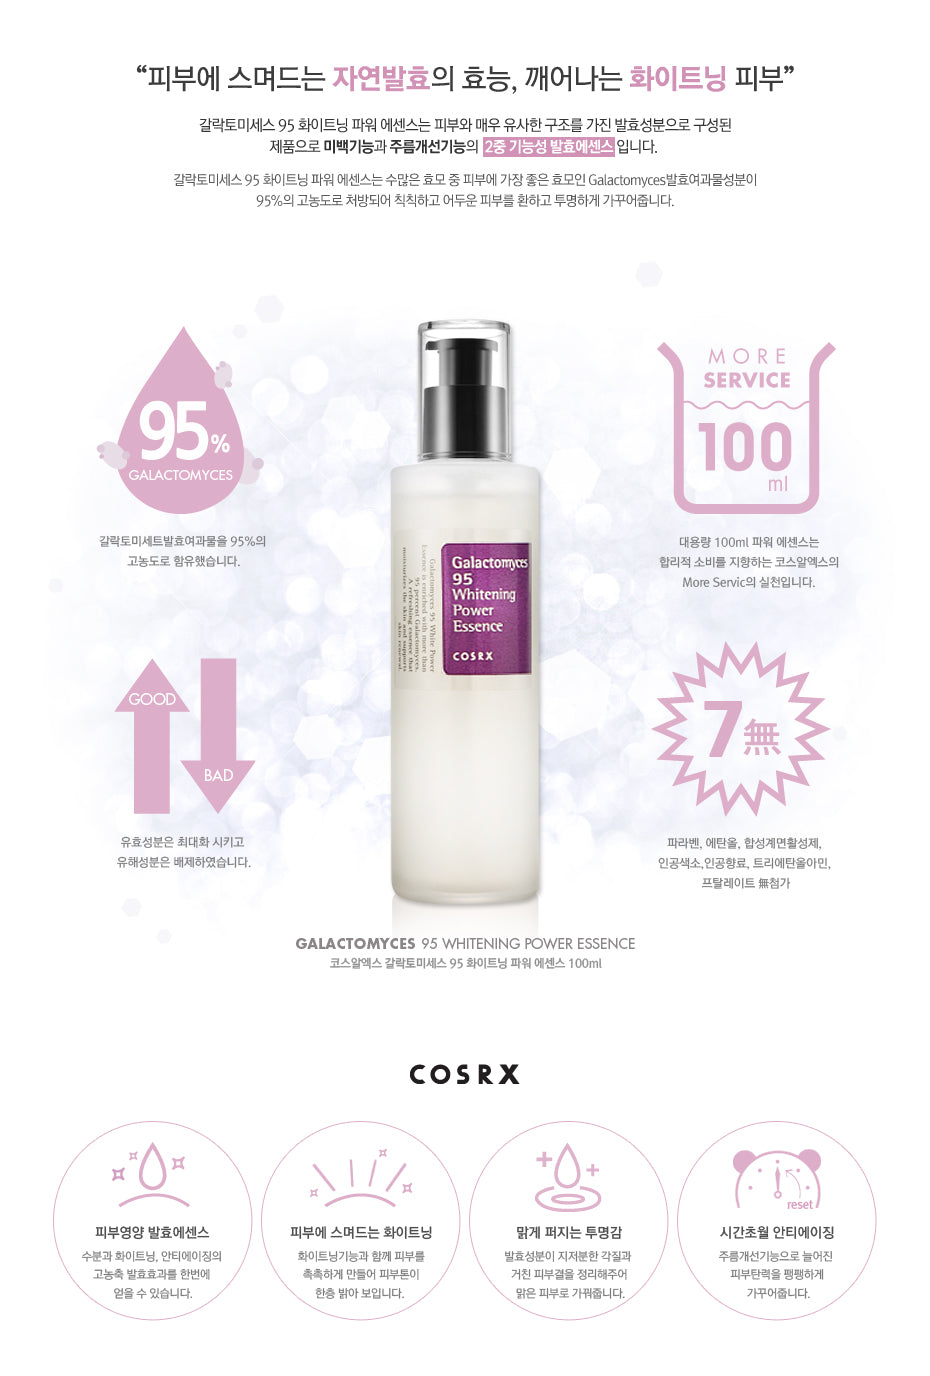 Cosrx - Galactomyces 95 White Power Essence